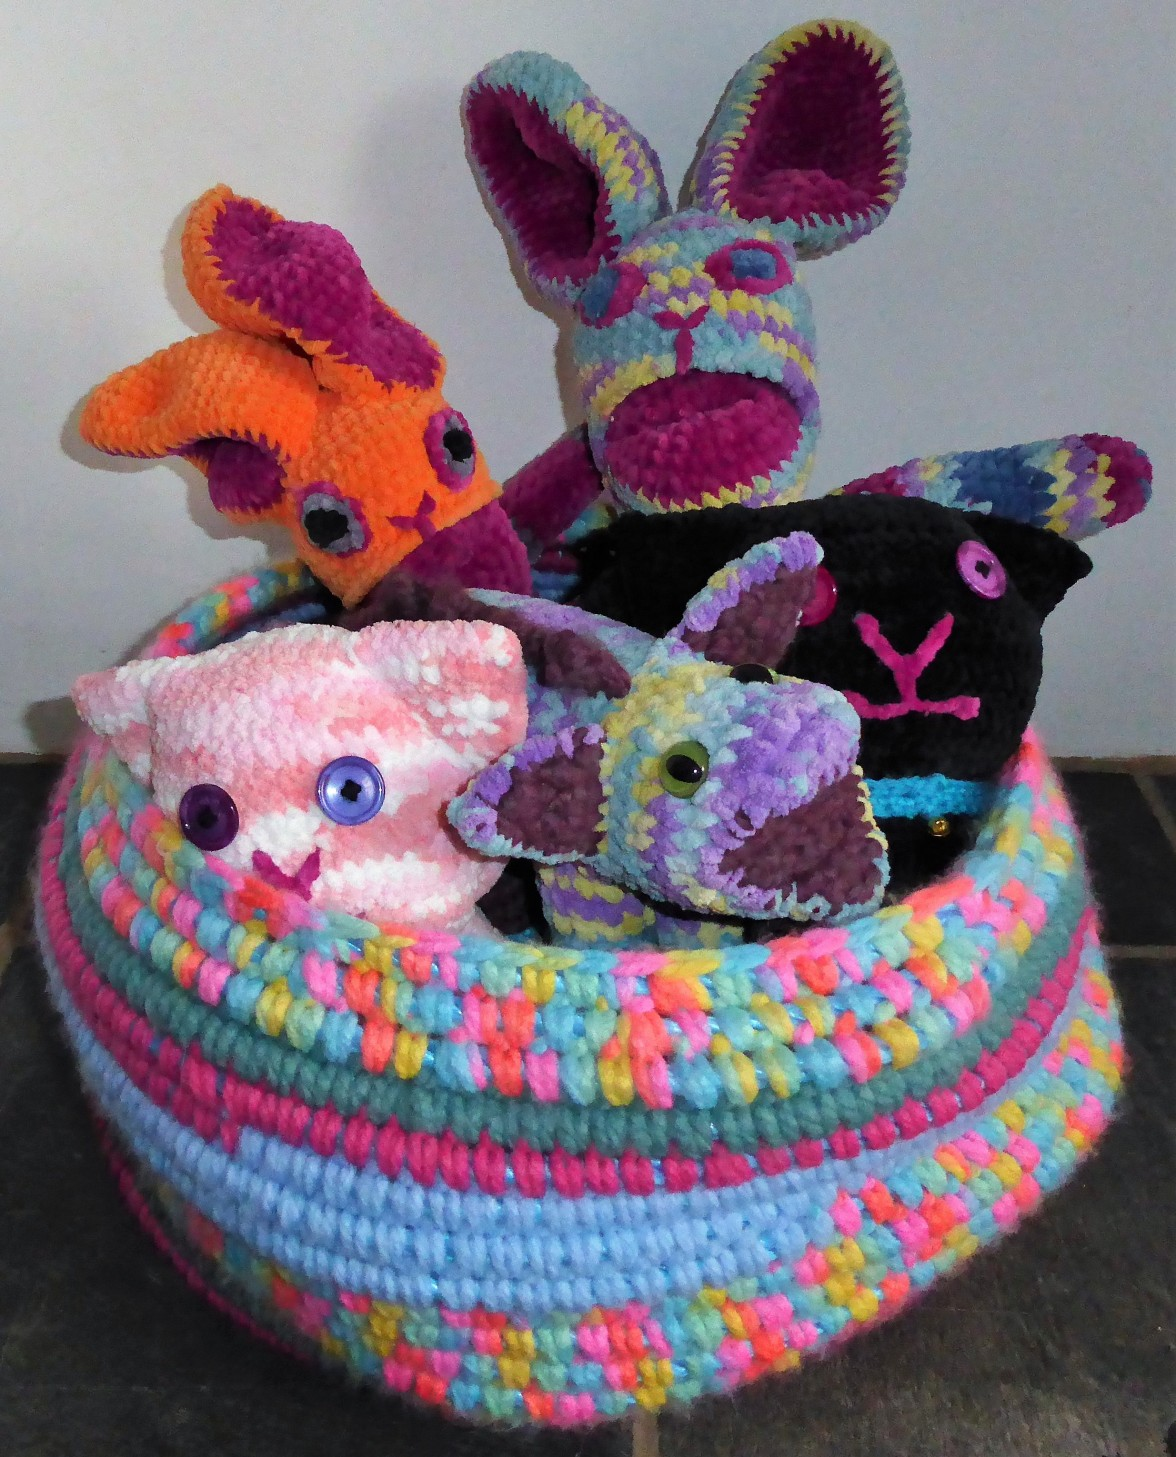 The latest basket becomes a crochet critter coracle!